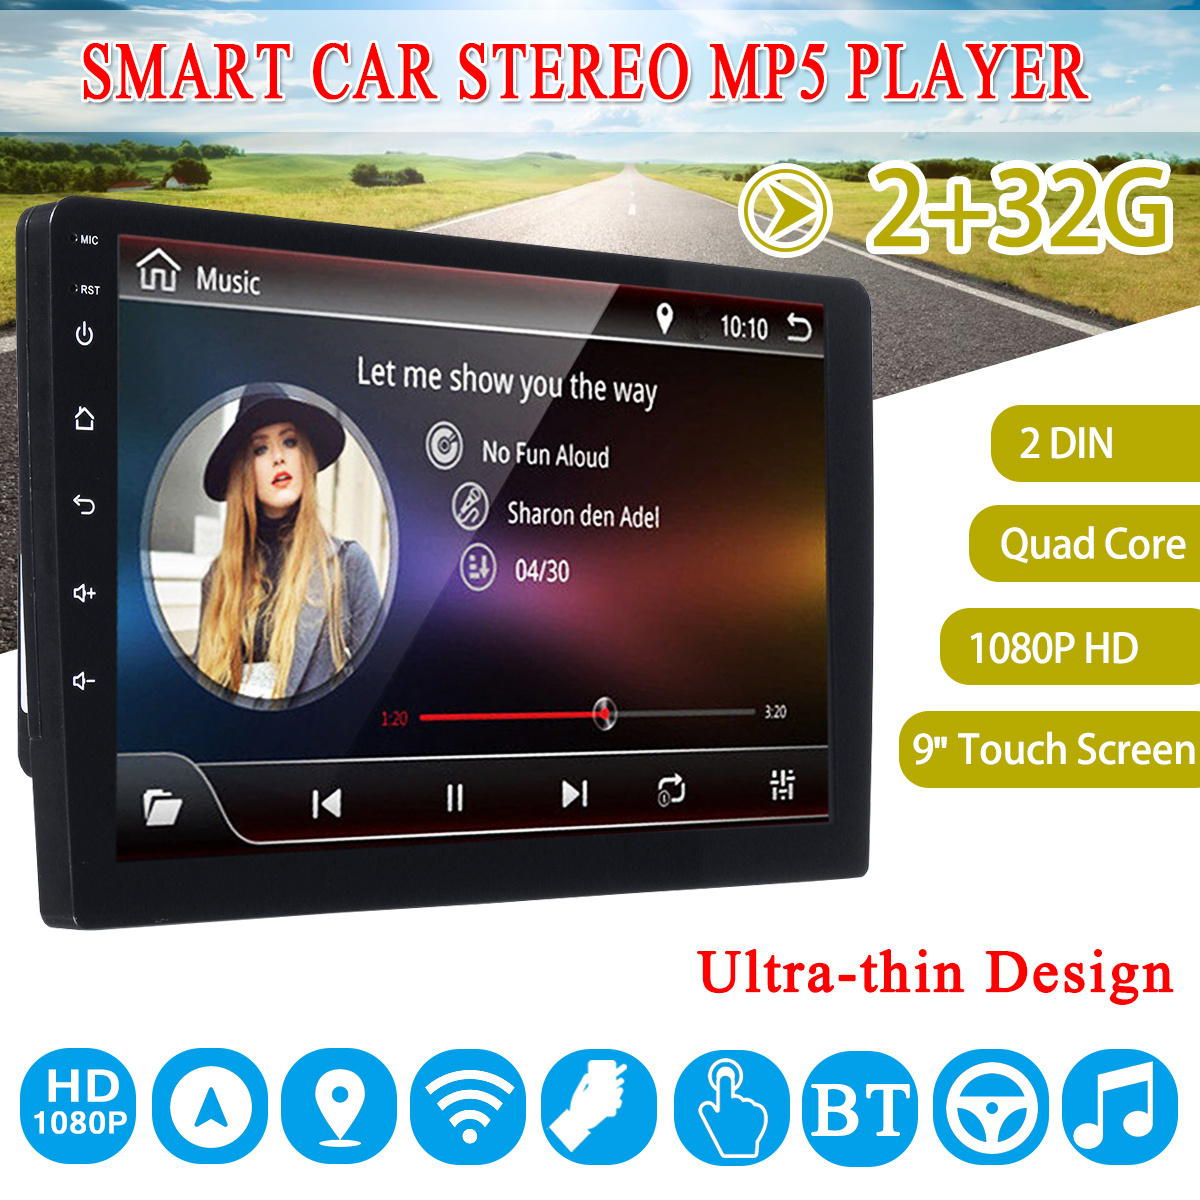 9 Car Stereo 2 Din 2G+ 32G for Android 7.1 bluetooth WIFI GPS Radio Video MP5 Player Navigation Car Multimedia Player9 Car Stereo 2 Din 2G+ 32G for Android 7.1 bluetooth WIFI GPS Radio Video MP5 Player Navigation Car Multimedia Player